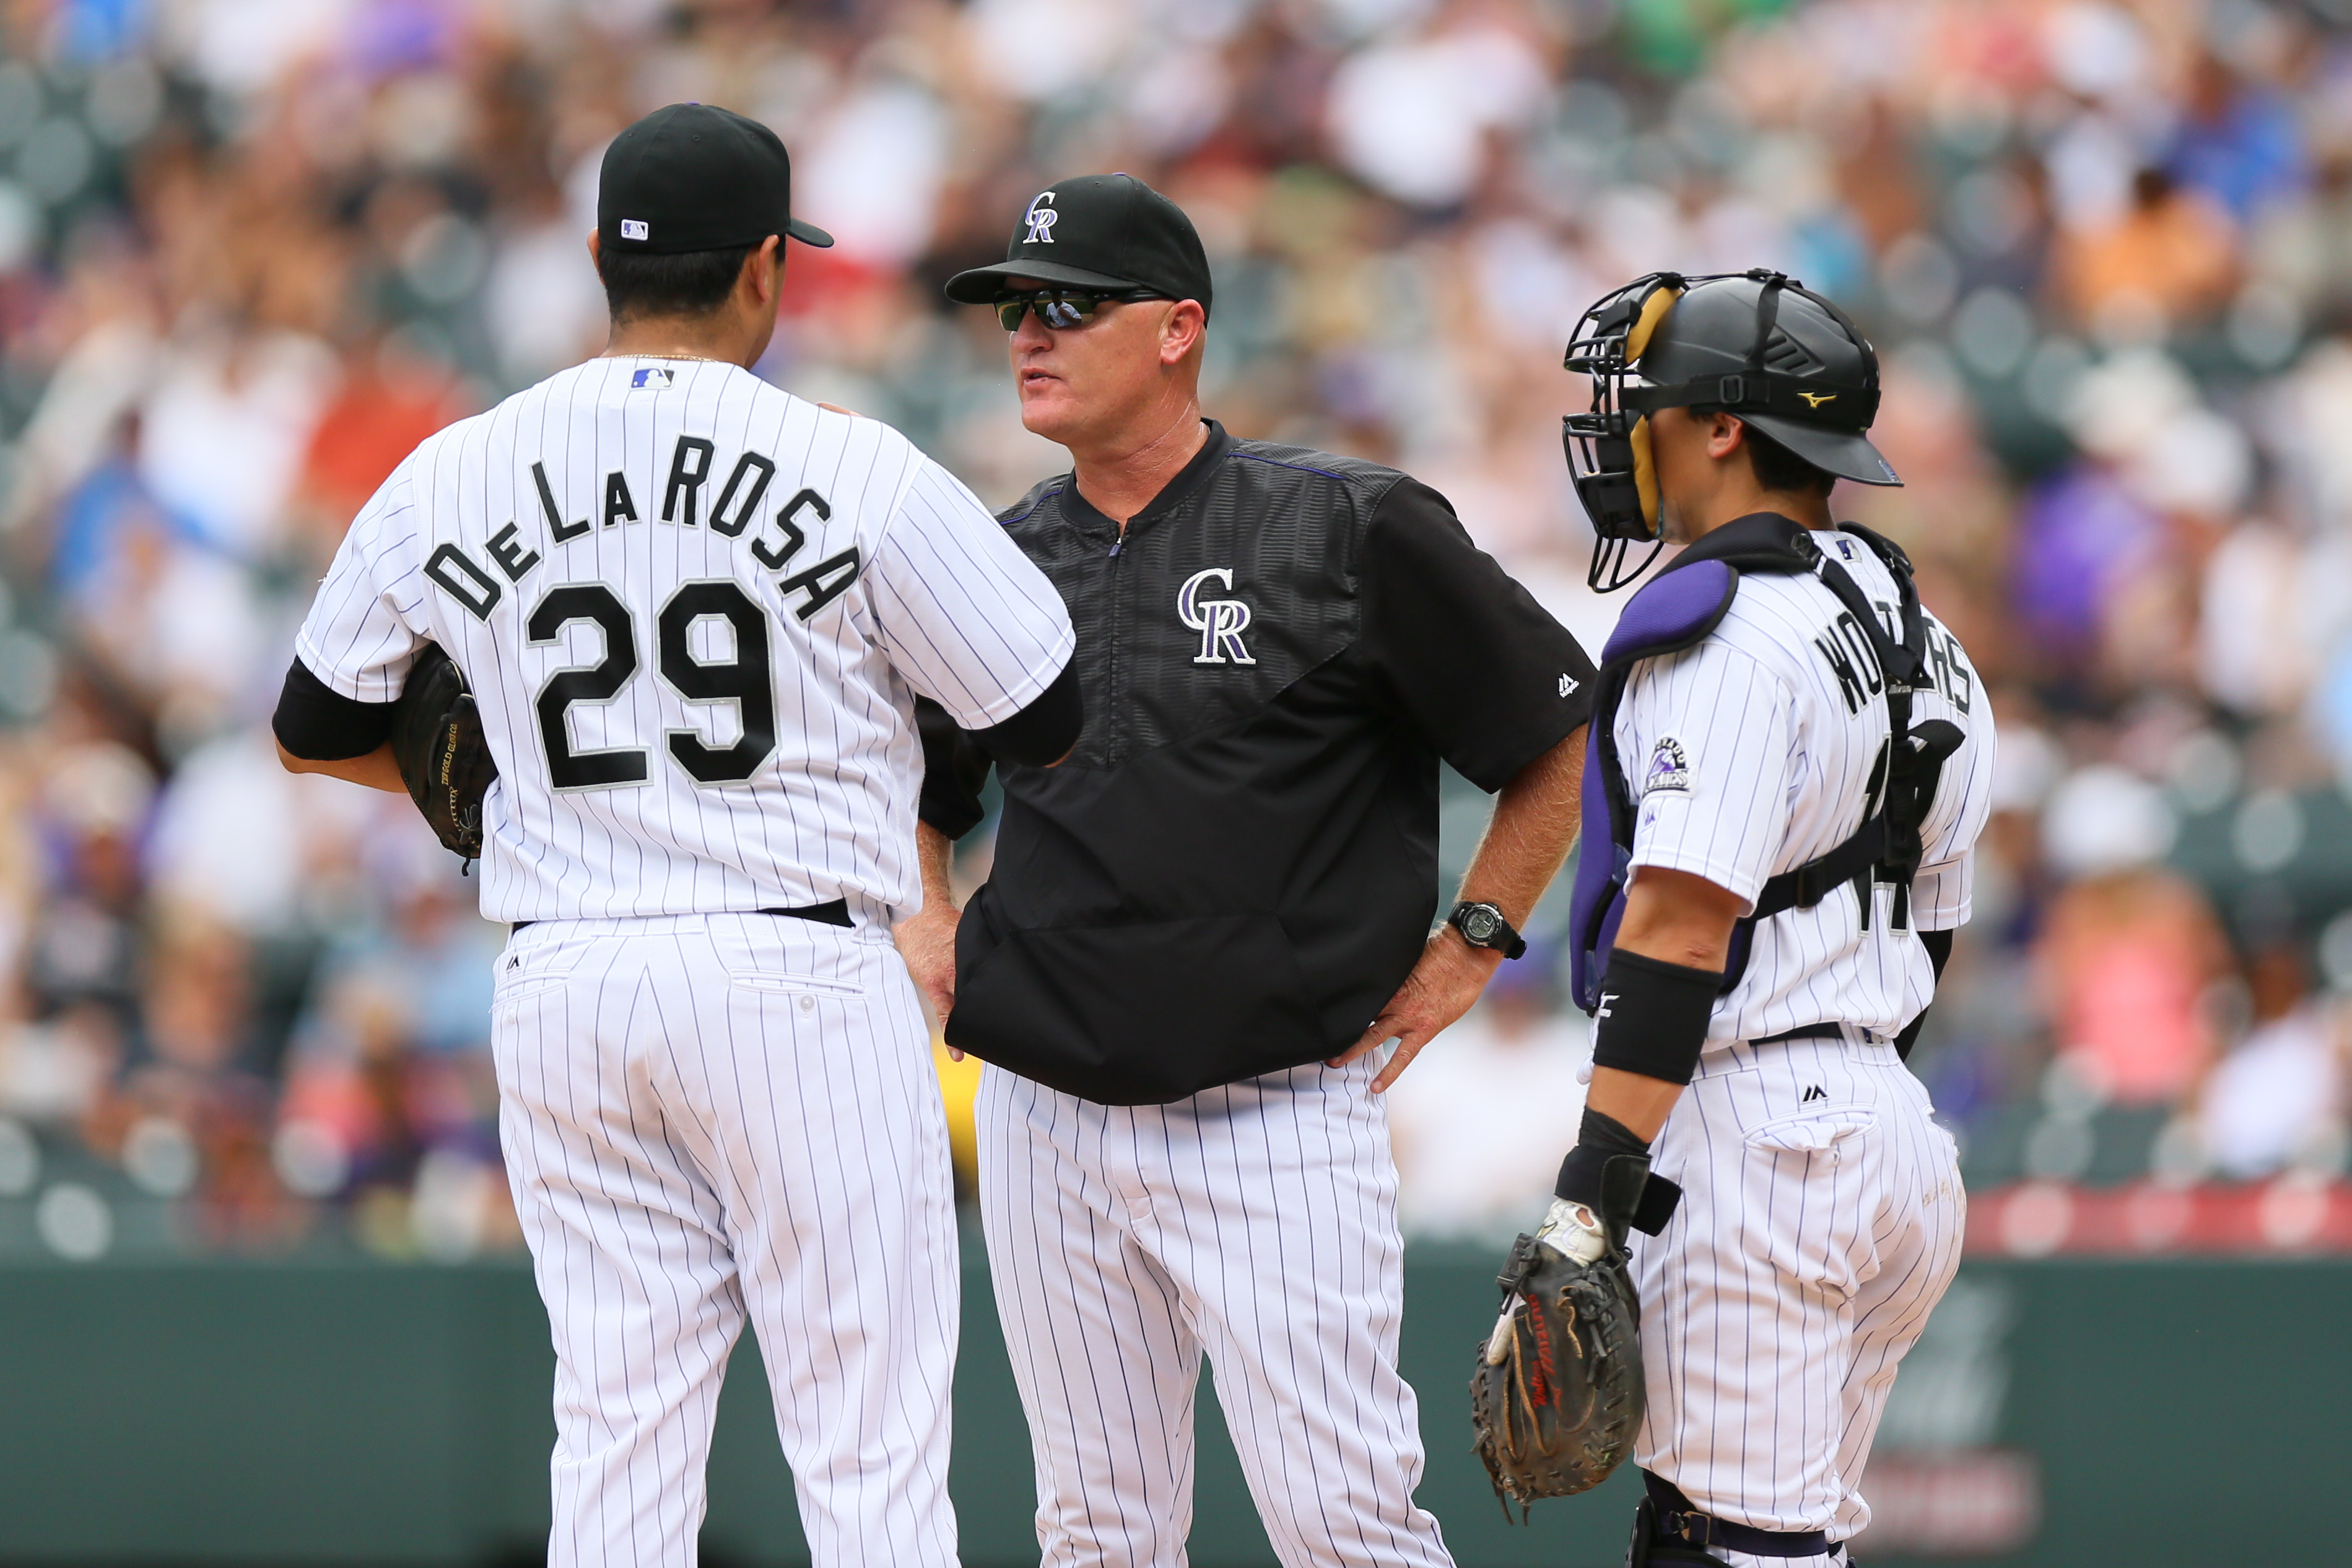 Pitching coach Steve Foster talks to starting pitcher Jorge De La Rosa #29 of the Colorado Rockies as catcher Tony Wolters #14 of the Colorado Rockies listens during the fourth inning against the Tampa Bay Rays at Coors Field on July 20, 2016 in Denver, Colorado. (Photo by Justin Edmonds/Getty Images)